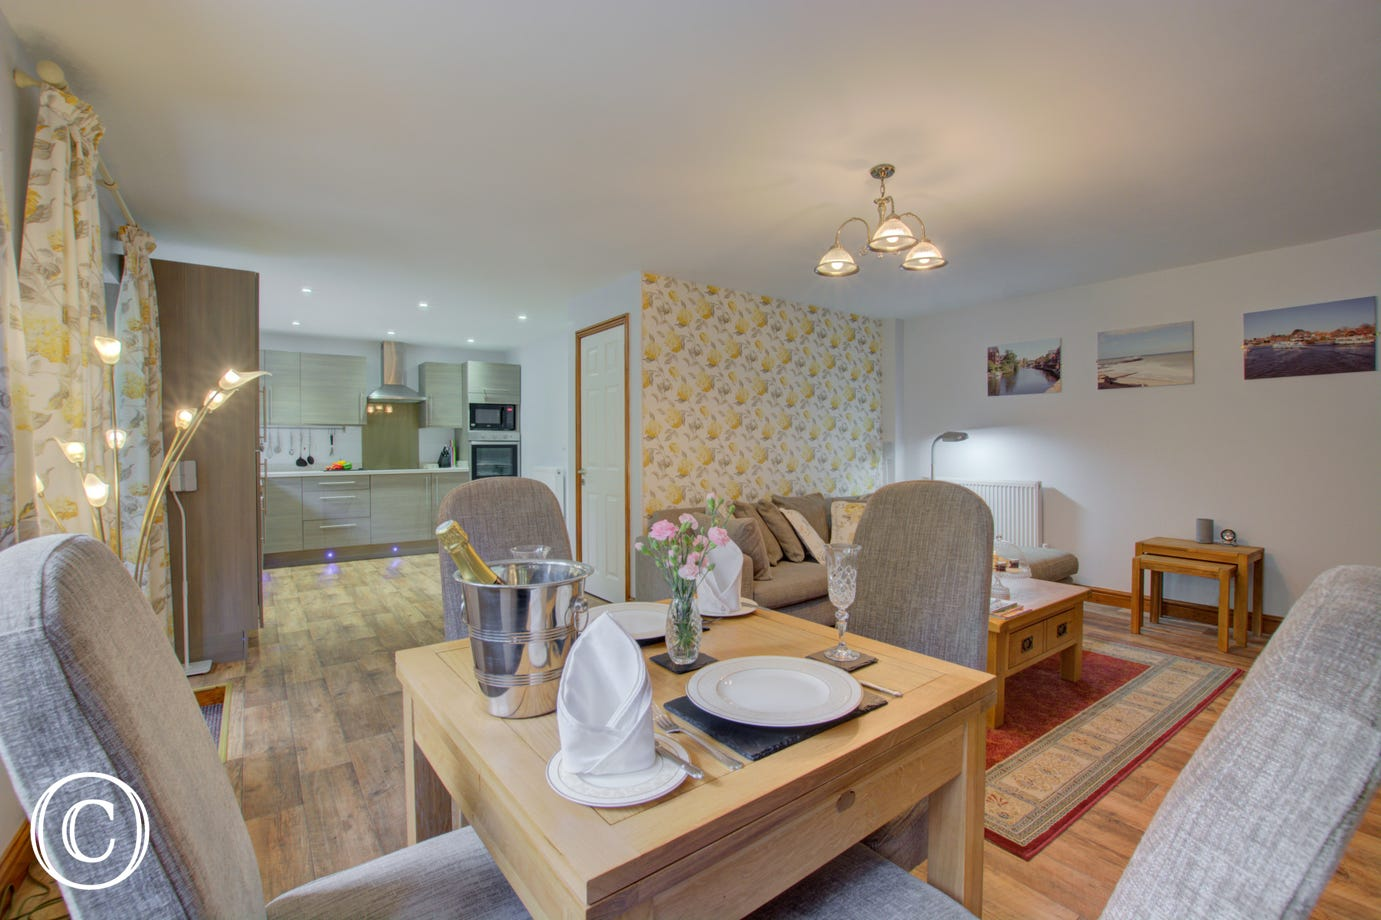 Comfortable seating and convenient dining area in the living space